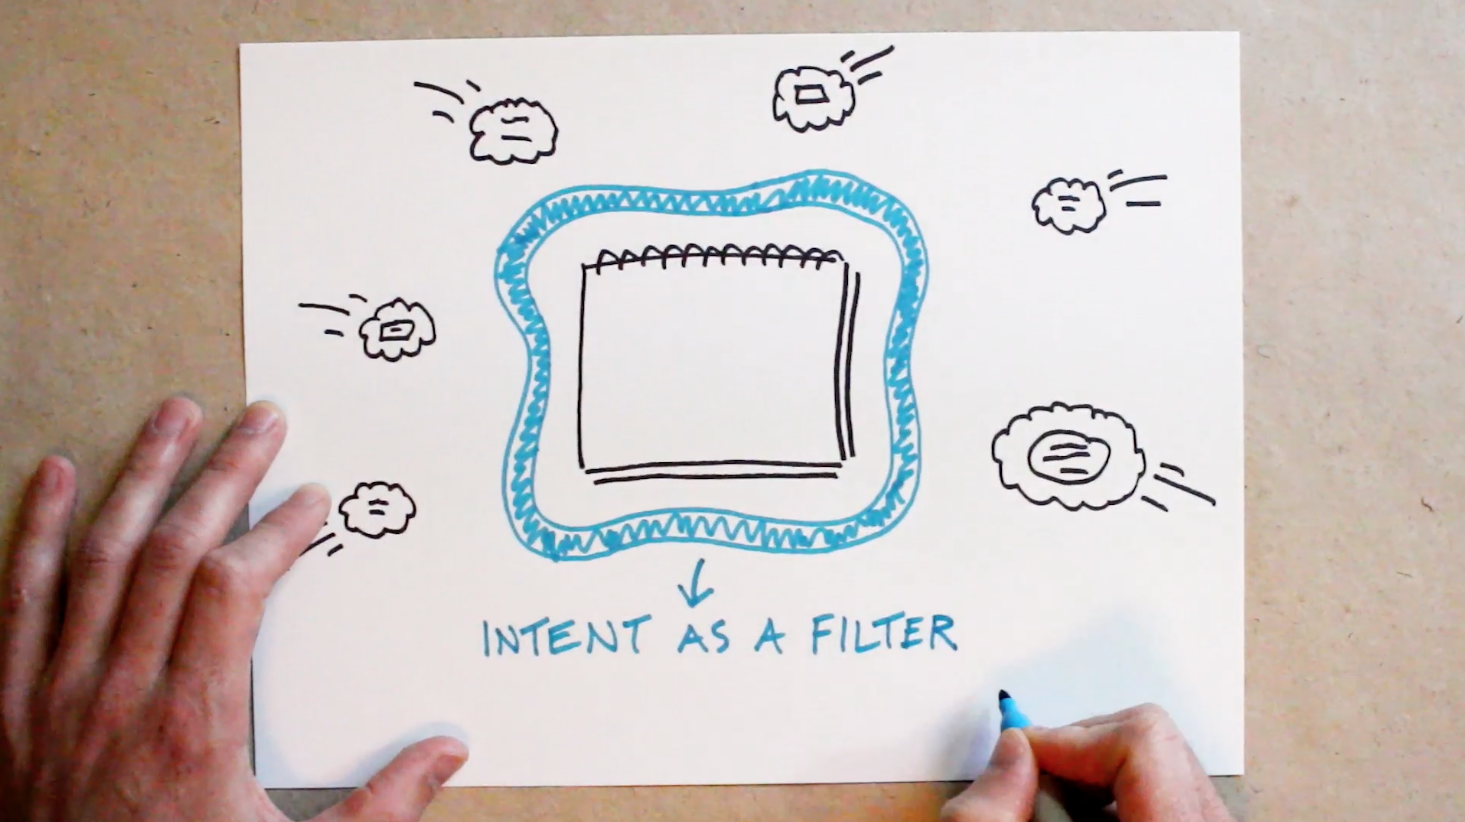 How To Filter Ideas When Sketchnoting - Verbal To Visual - Doug Neill